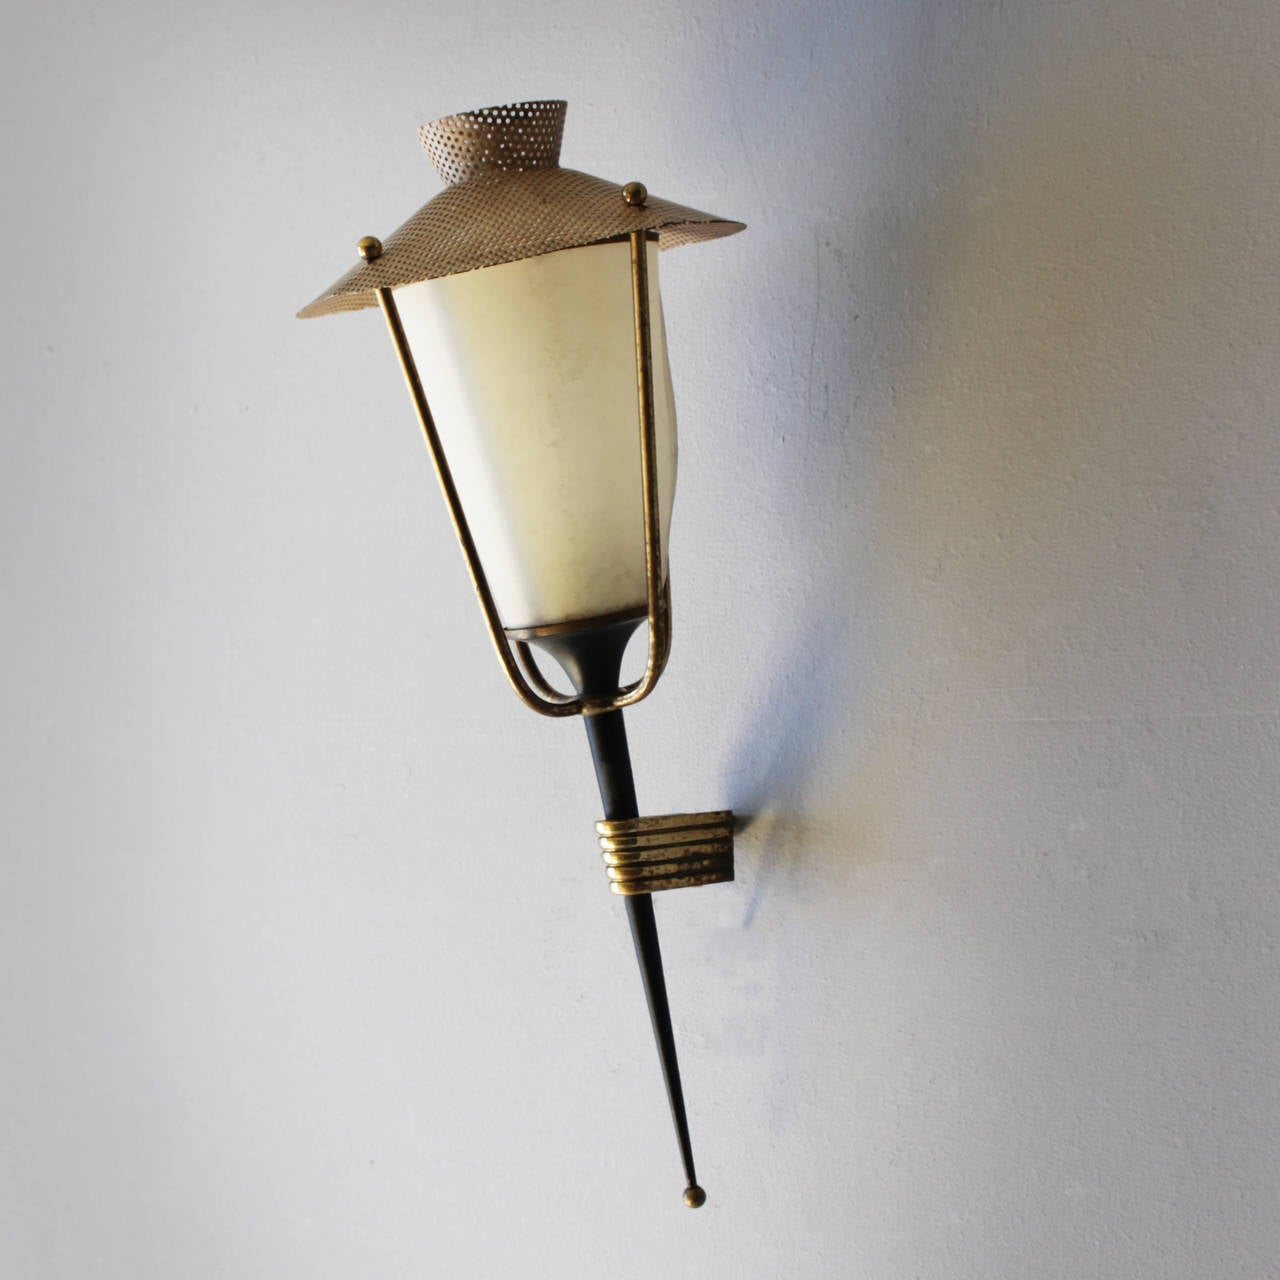 Corner Wall Mount Lamp : Pair of Corner Mounted Sconces by Maison Arlus For Sale at 1stdibs